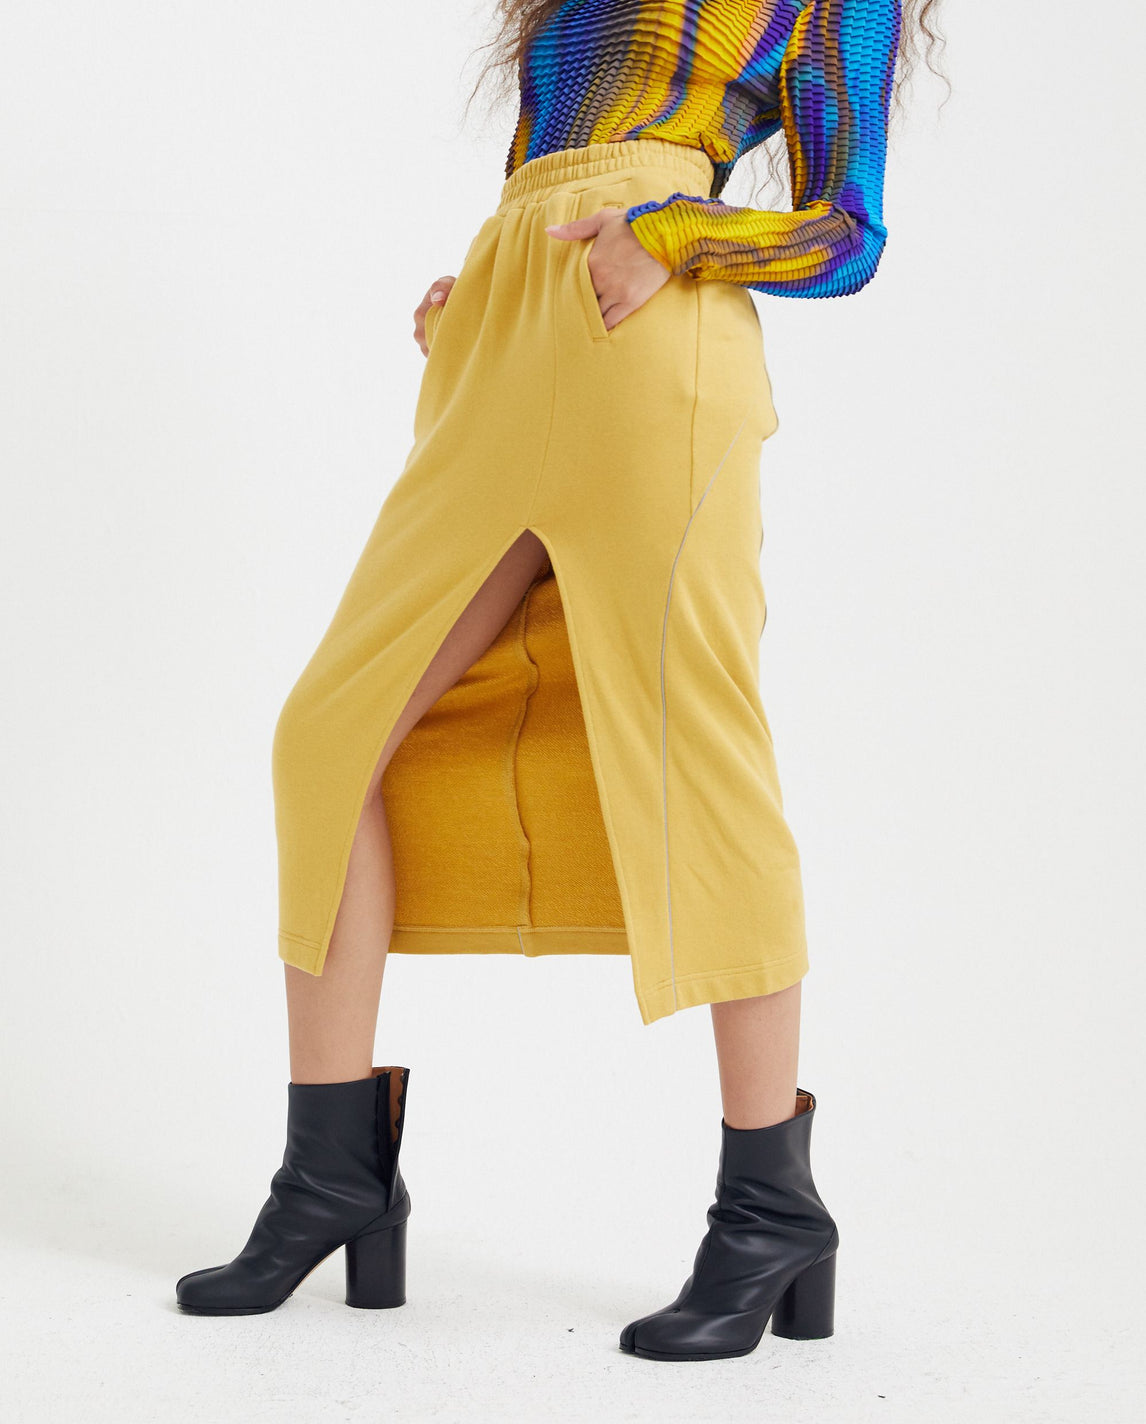 Midi Skirt With Slit - Yellow WOMENS PRIVATE POLICY